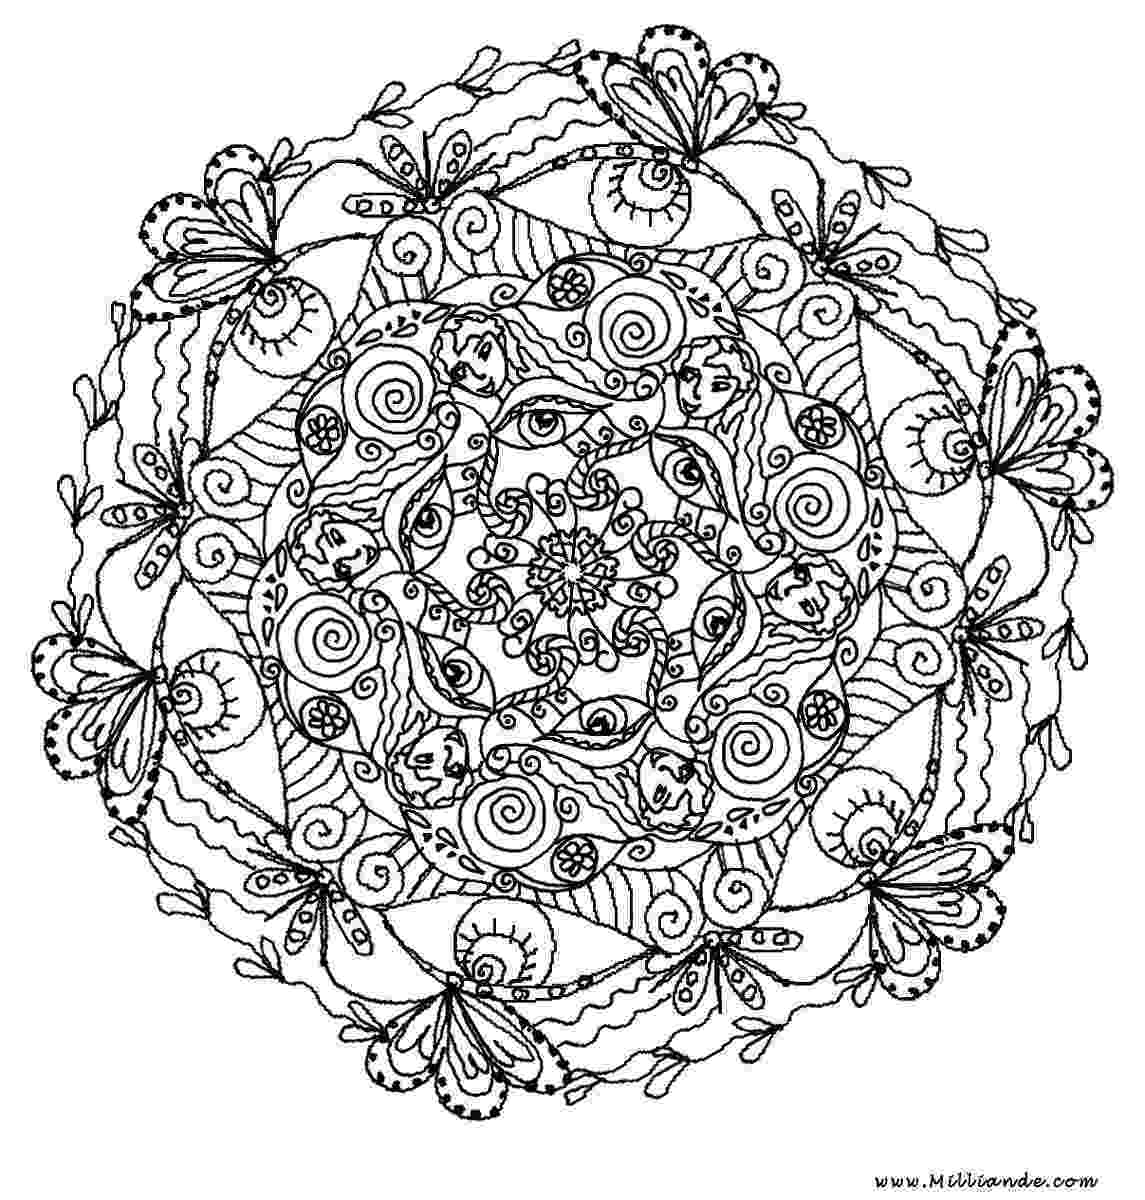 free online mandala coloring pages for adults get this free mandala coloring pages for adults 42893 adults pages coloring mandala online for free